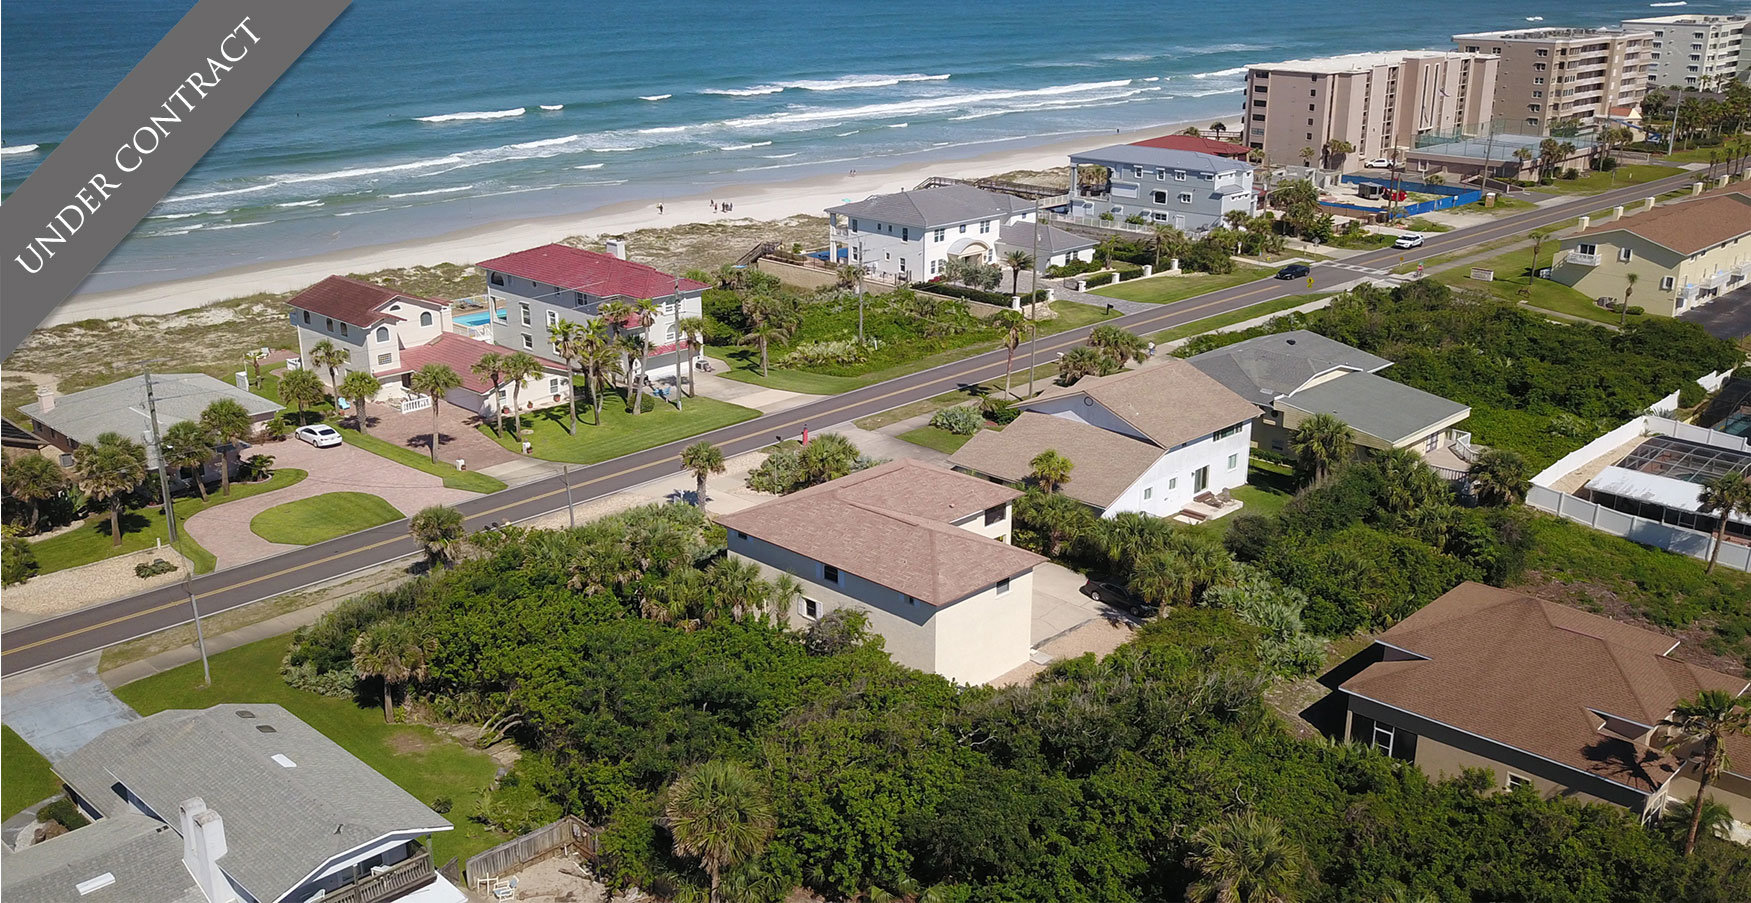 Homes for sale in Ponce Inlet, FL 4730 S Atlantic Ave Under Contract